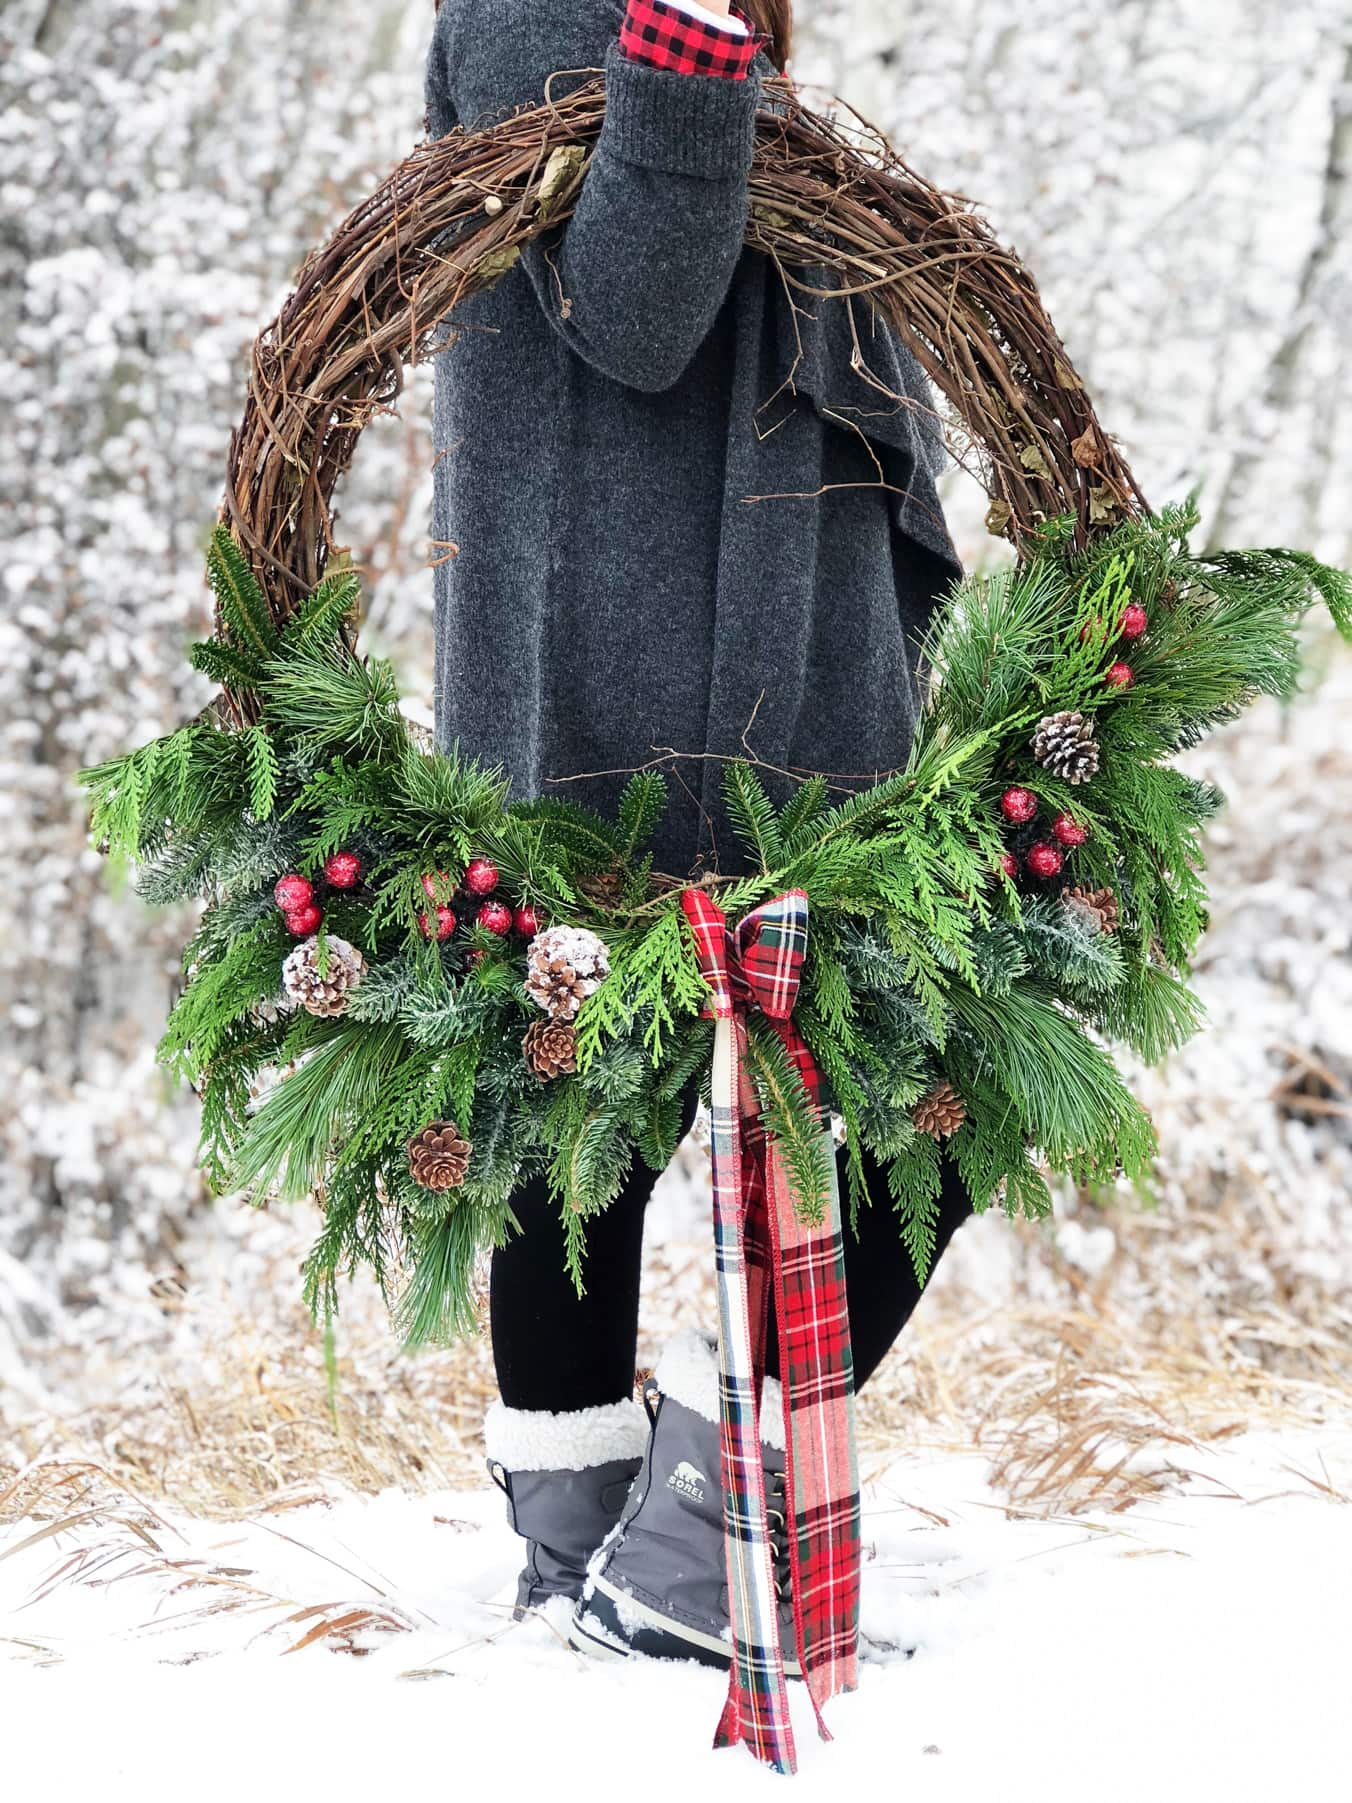 Christmas Grapevine Evergreen Wreath